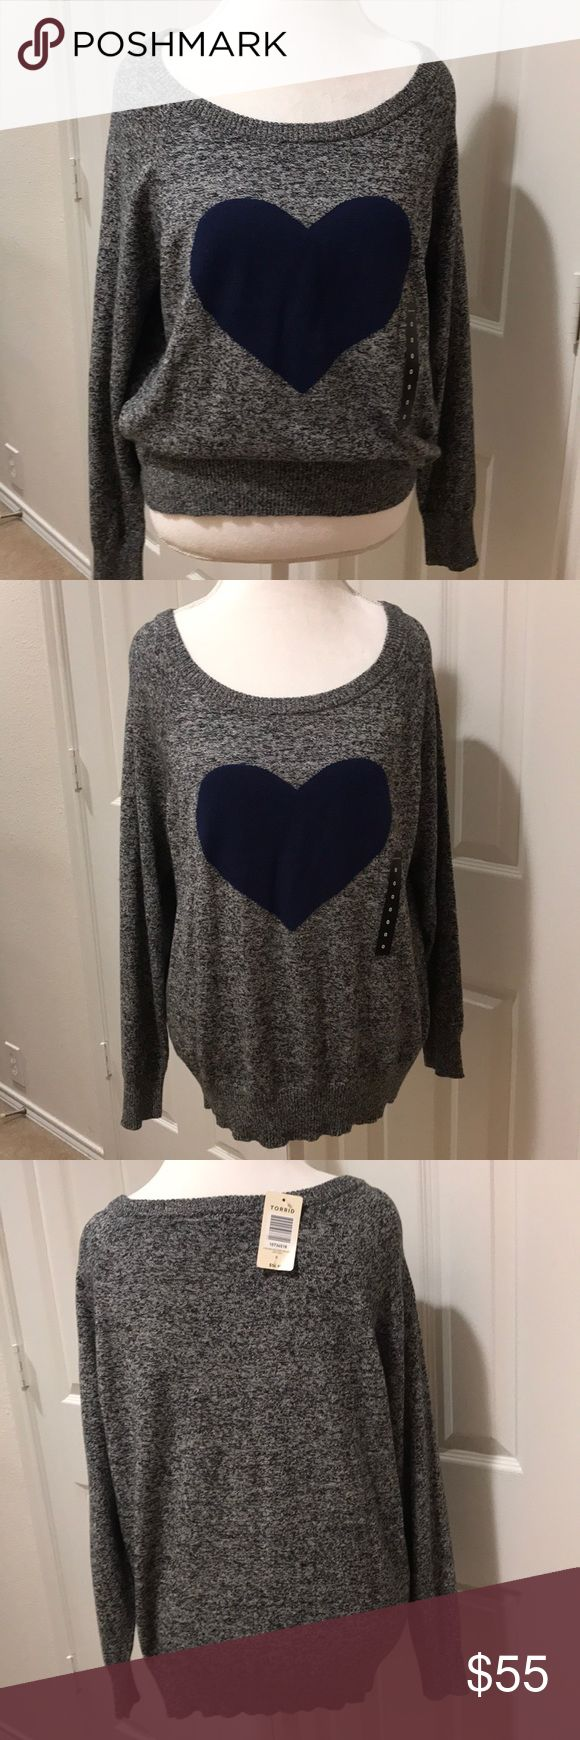 "🆕Torrid Heart Sweater New with tags, absolutely adorable black and white marled sweater sign navy blue heart. This is a 🎉REPOSH🎉 only because it did not fit. Wide scoop neck with wide band at the waist. 100% cotton, very cozy and comfy! Measures 23"" bust, 26"" length. Bundle discount available and I am also open to offers! torrid Sweaters"